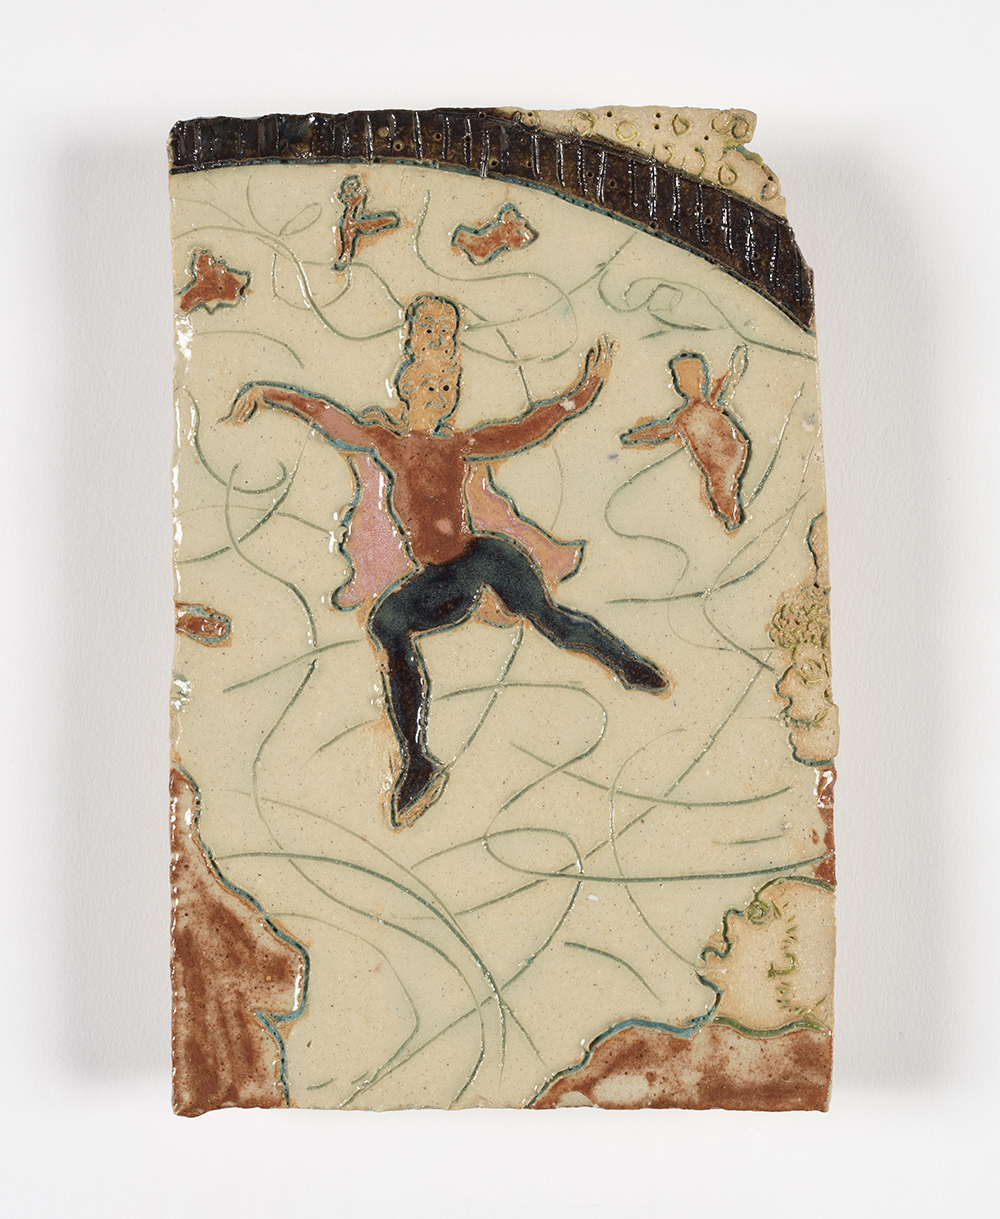 Kevin McNamee-Tweed.<em> Skaters</em>, 2019. Glazed ceramic, 5 1/2 x 3 3/4 inches (14 x 9.5 cm)